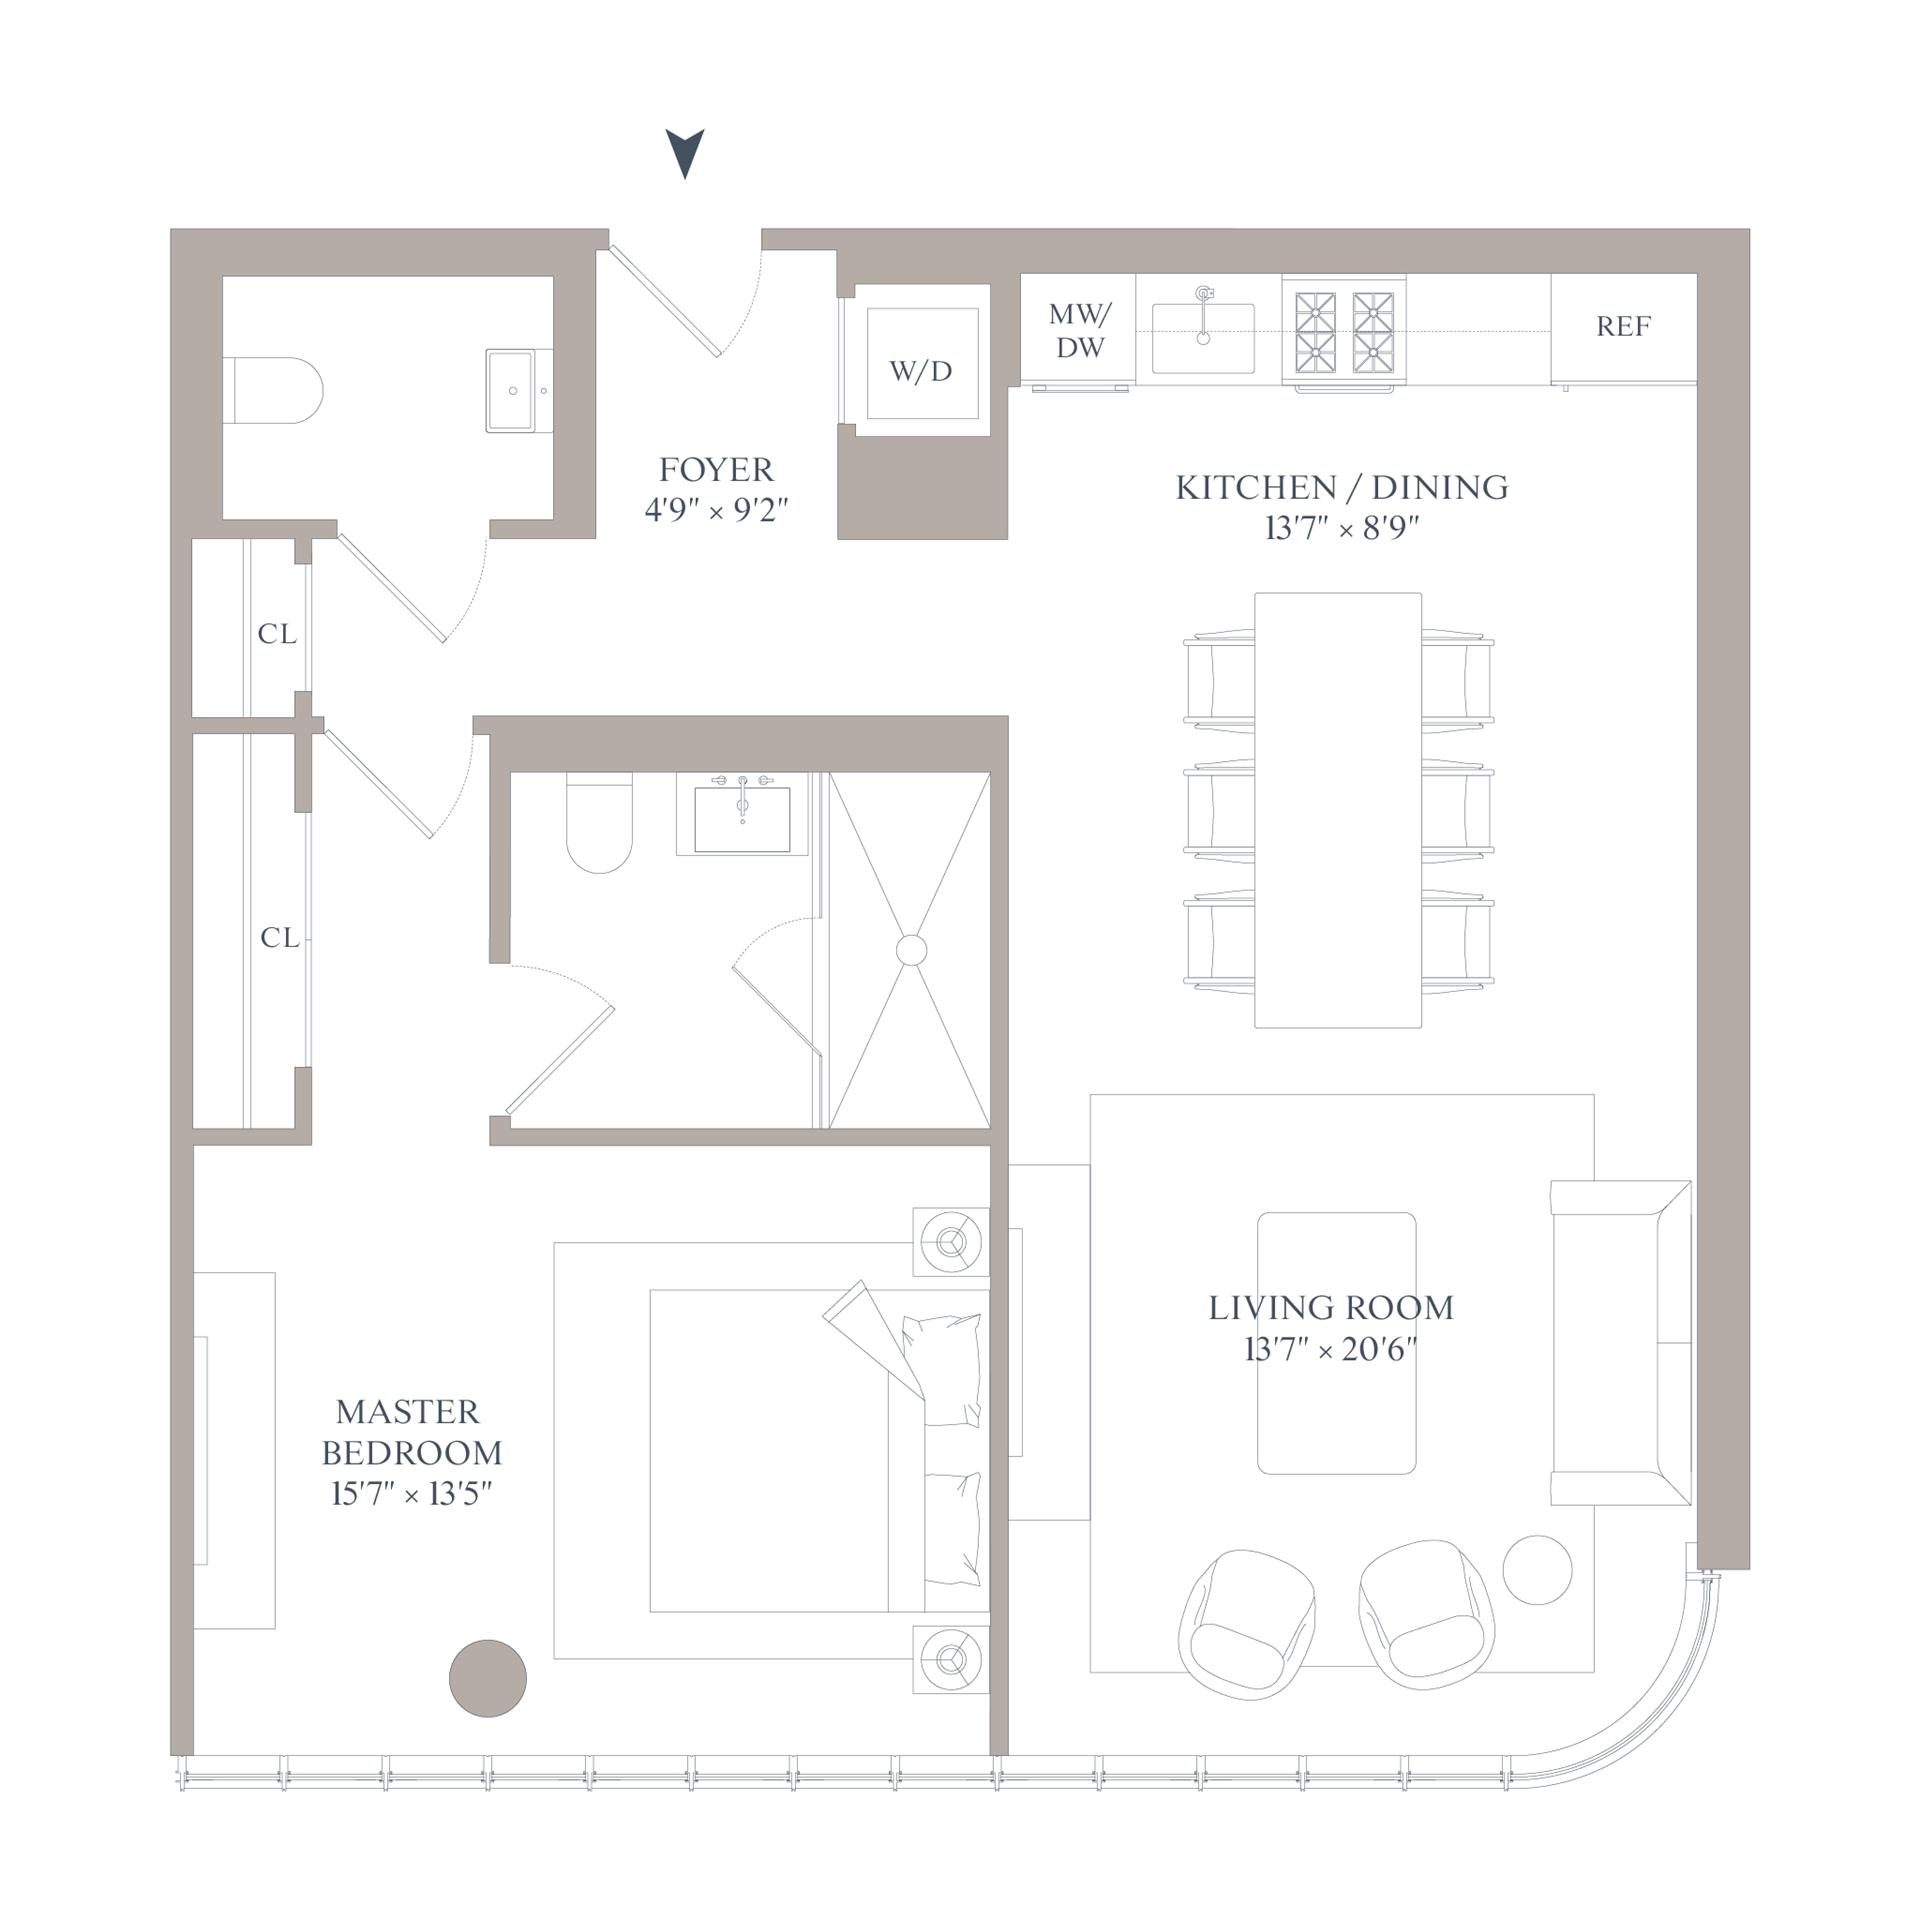 Floor plan of 565 Broome St, S12D - SoHo - Nolita, New York